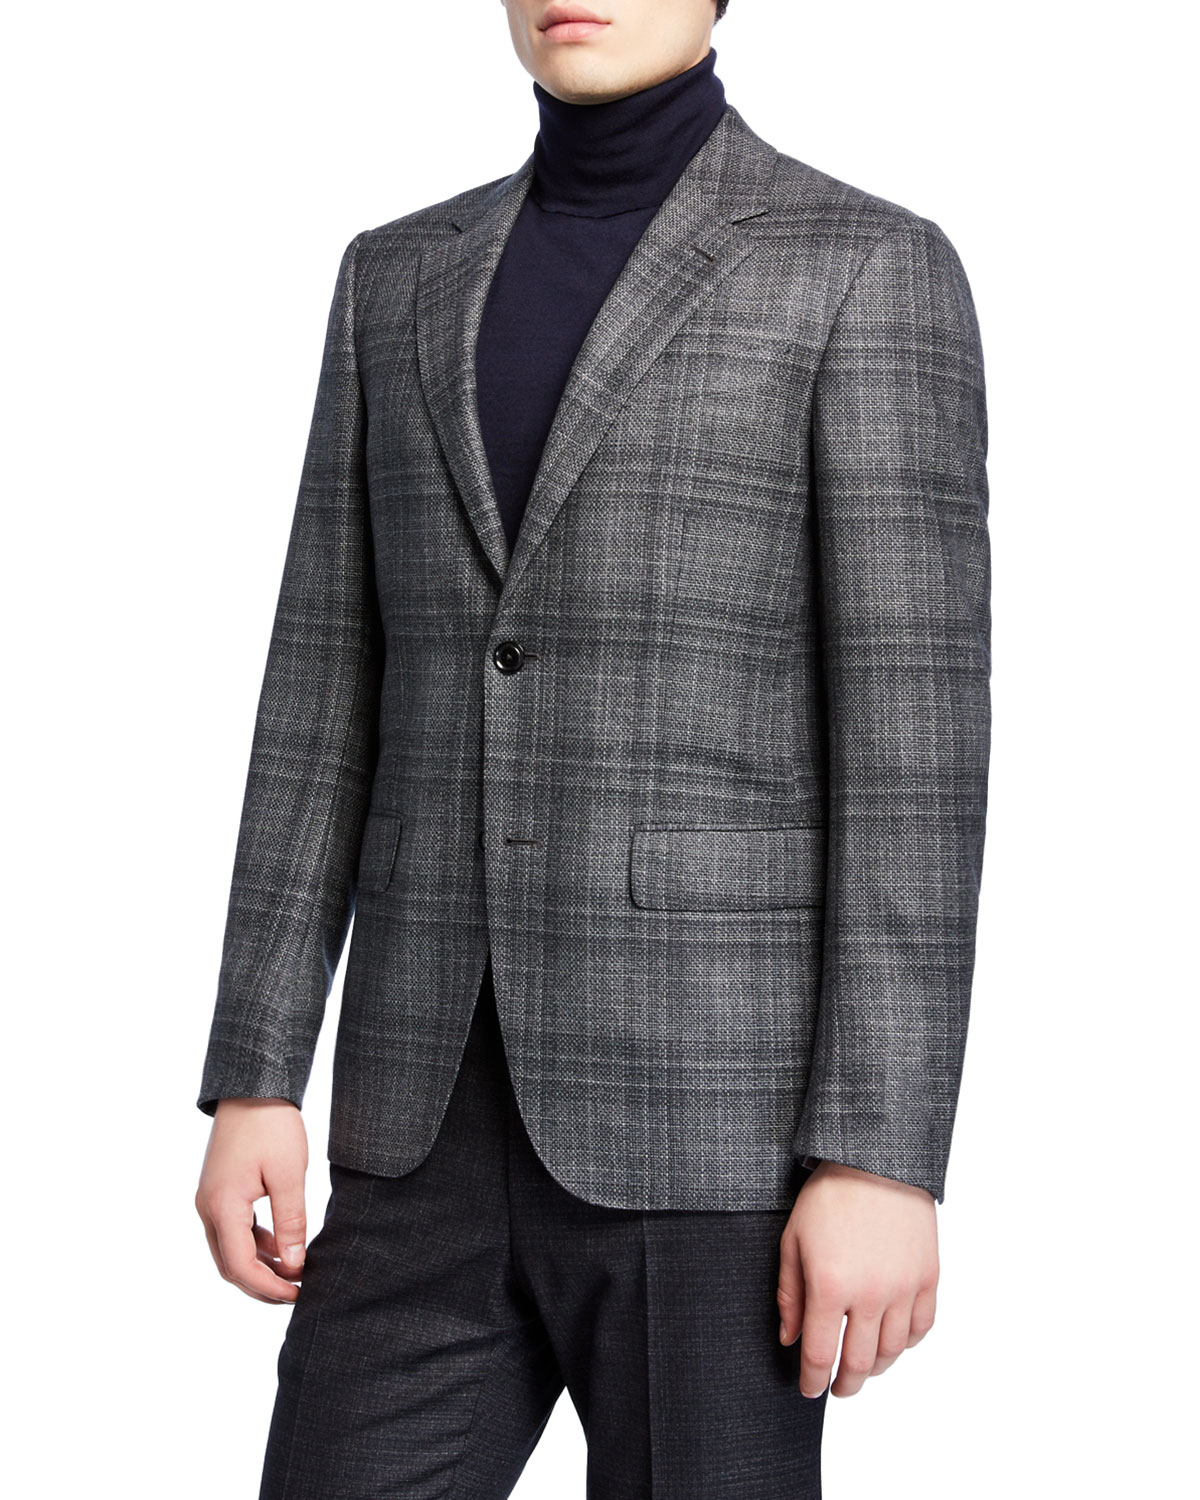 Ermenegildo Zegna Coats MEN'S PLAID WOOL SPORT COAT